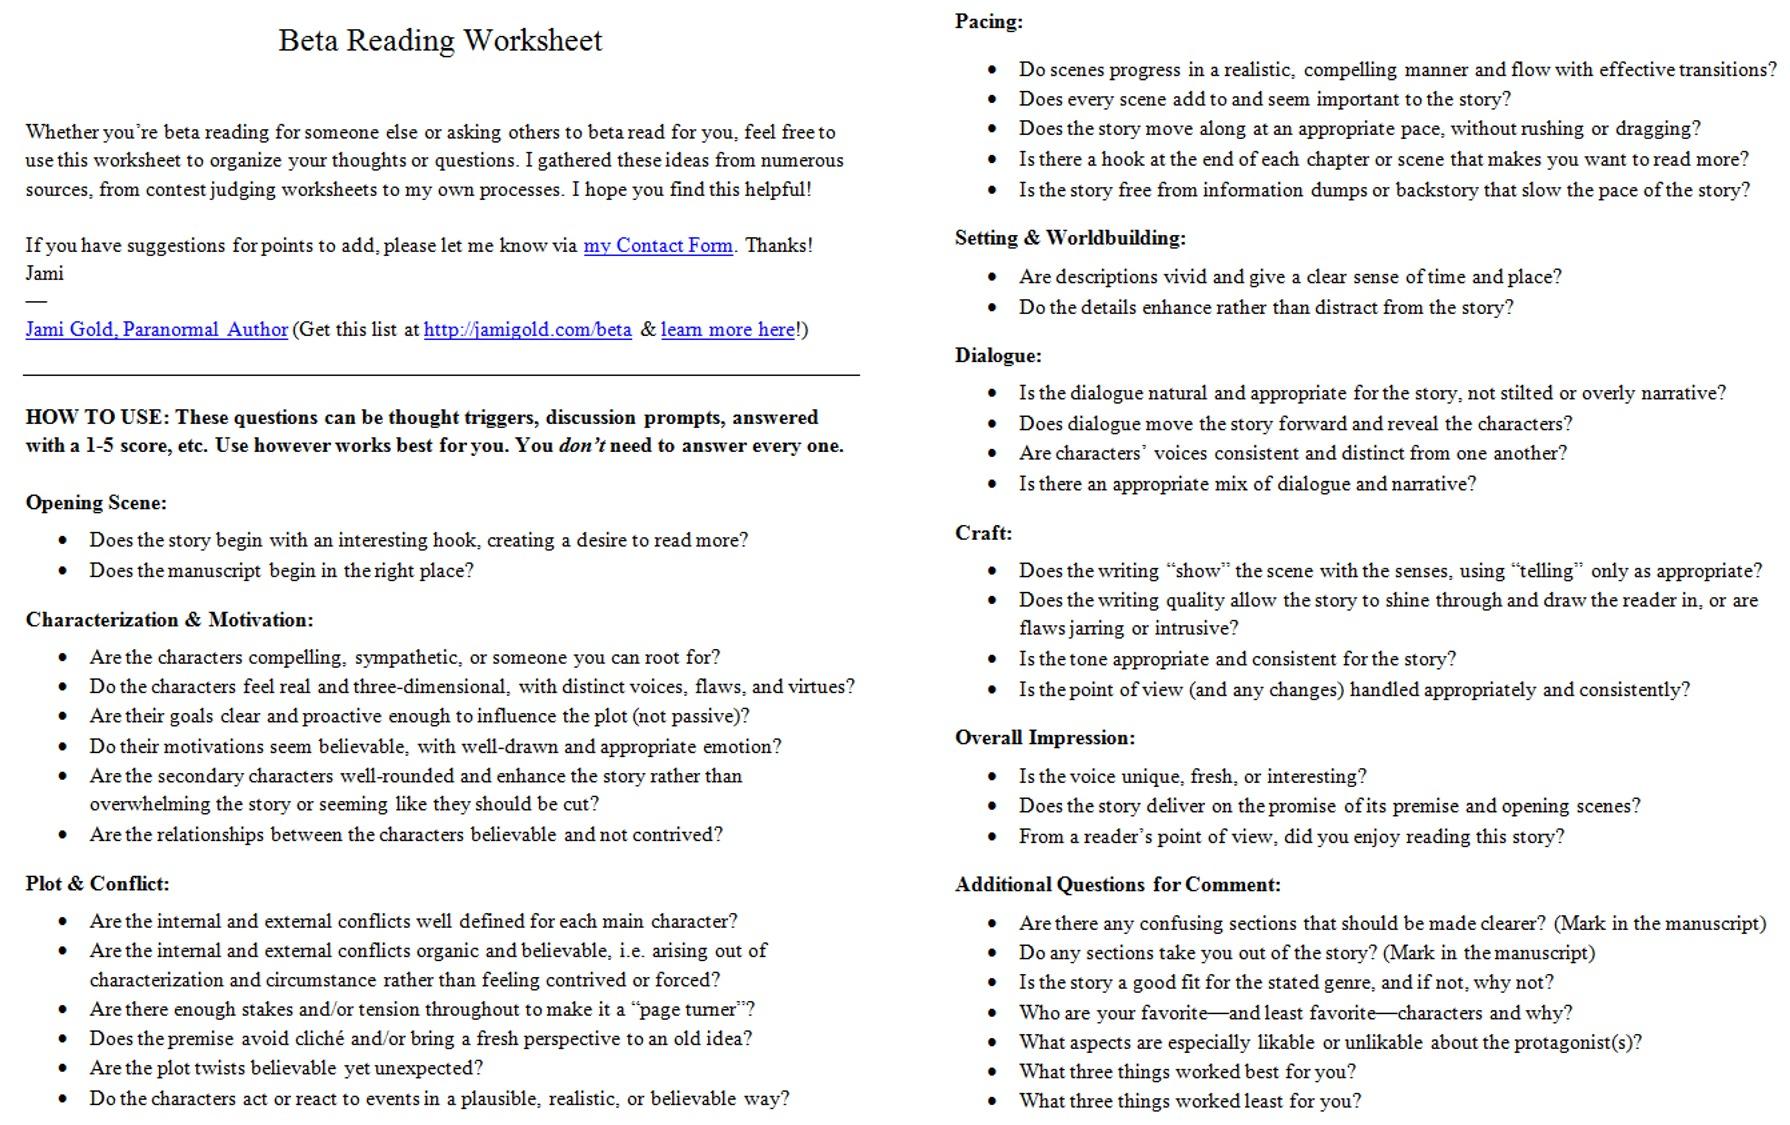 Proatmealus  Mesmerizing Worksheets For Writers  Jami Gold Paranormal Author With Fascinating Screen Shot Of The Twopage Beta Reading Worksheet With Delightful Fl Child Support Worksheet Also Quantitative Comparison Worksheets In Addition Kindergarten Abc Worksheets Free And Language Worksheets For St Grade As Well As Nd Grade Context Clues Worksheets Additionally Rectilinear Area Worksheets From Jamigoldcom With Proatmealus  Fascinating Worksheets For Writers  Jami Gold Paranormal Author With Delightful Screen Shot Of The Twopage Beta Reading Worksheet And Mesmerizing Fl Child Support Worksheet Also Quantitative Comparison Worksheets In Addition Kindergarten Abc Worksheets Free From Jamigoldcom